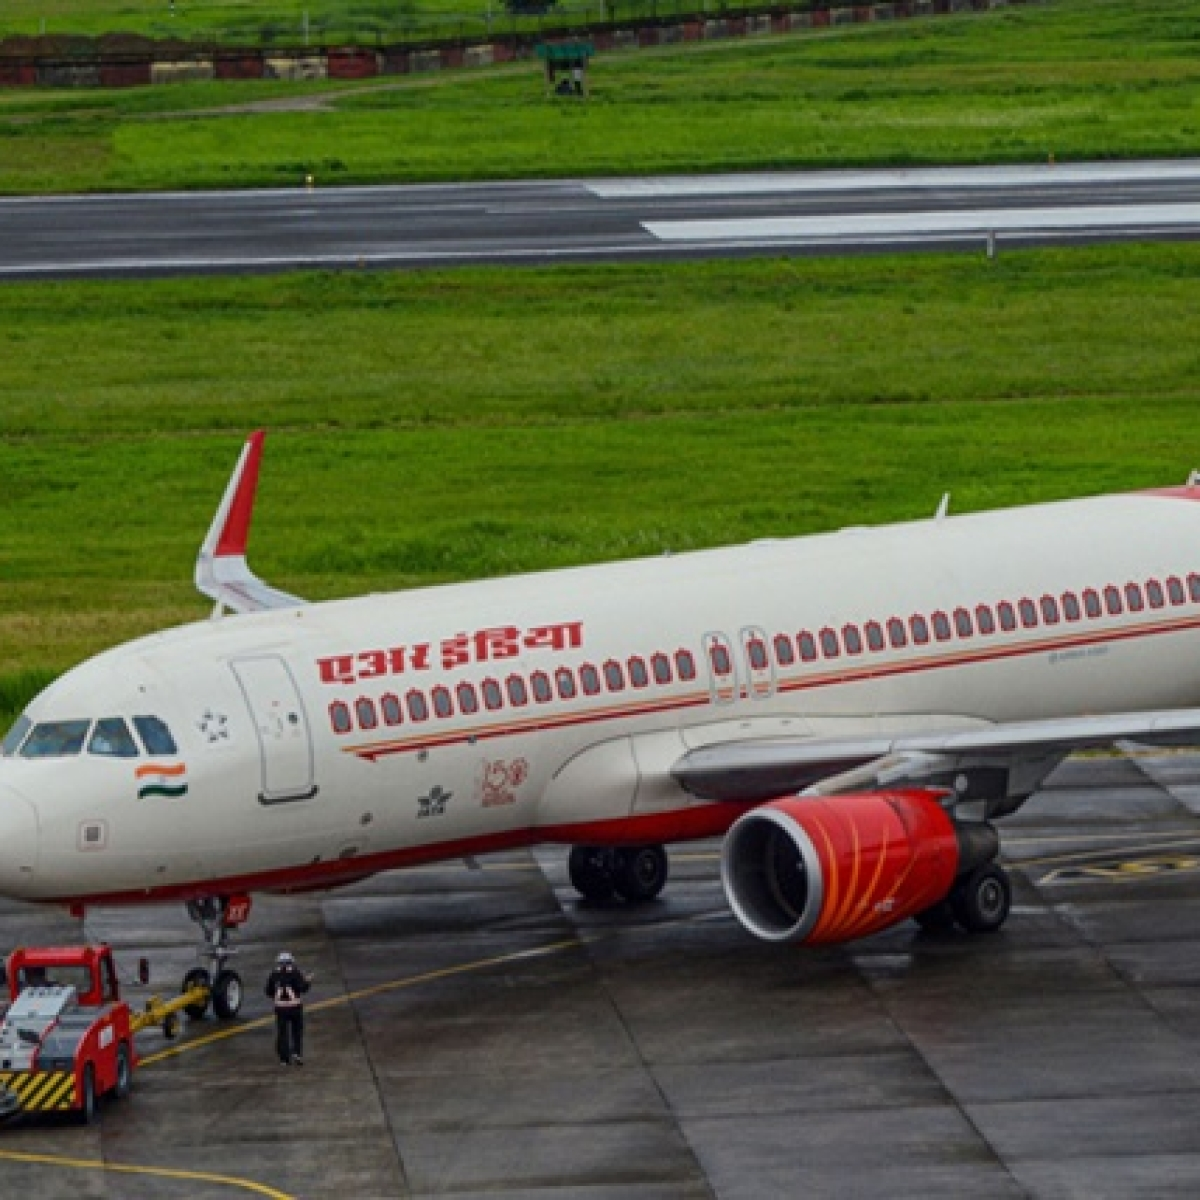 Coronavirus in Indore: Special Air India flight carrying 93 passengers from London lands at Indore Airport